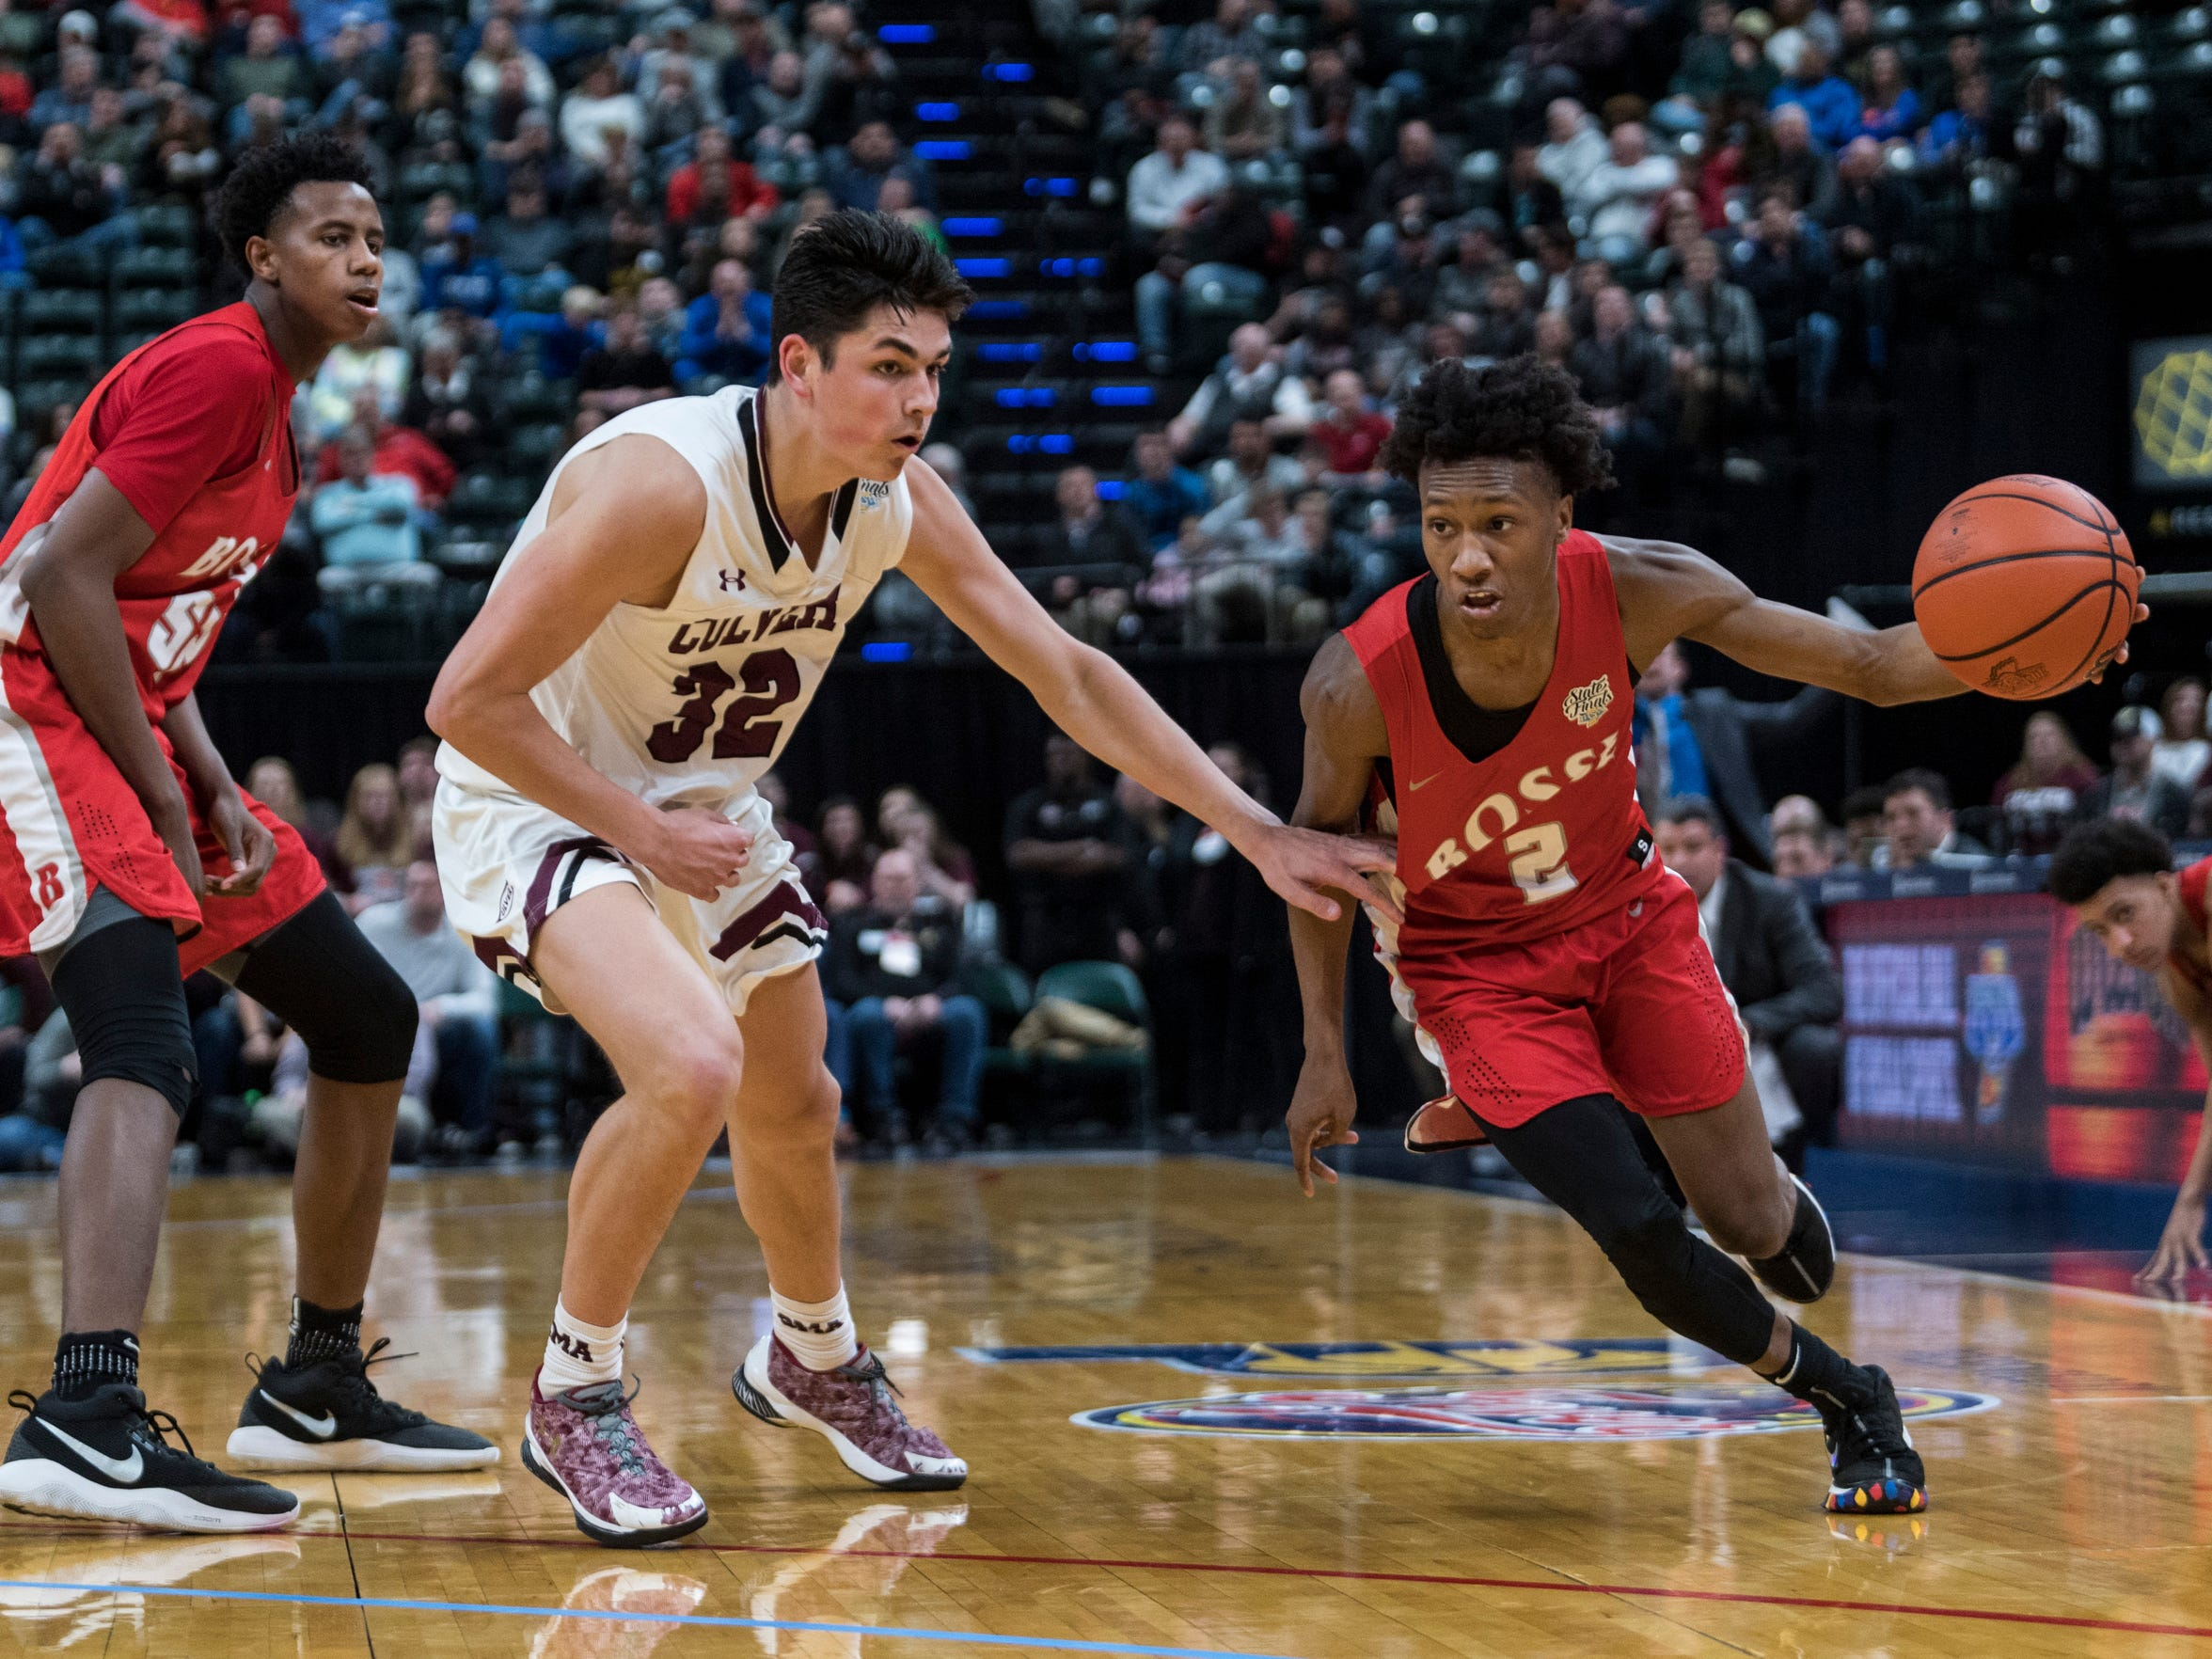 Bosse's Mekhi Lairy (2) drives past Culver Academies defenseman Trey Galloway (32) during the IHSAA Class 3A State Championship at Bankers Life Fieldhouse in Indianapolis, Saturday, March 24. The Bulldogs were defeated by the Culver Academies Eagles, 64-49.